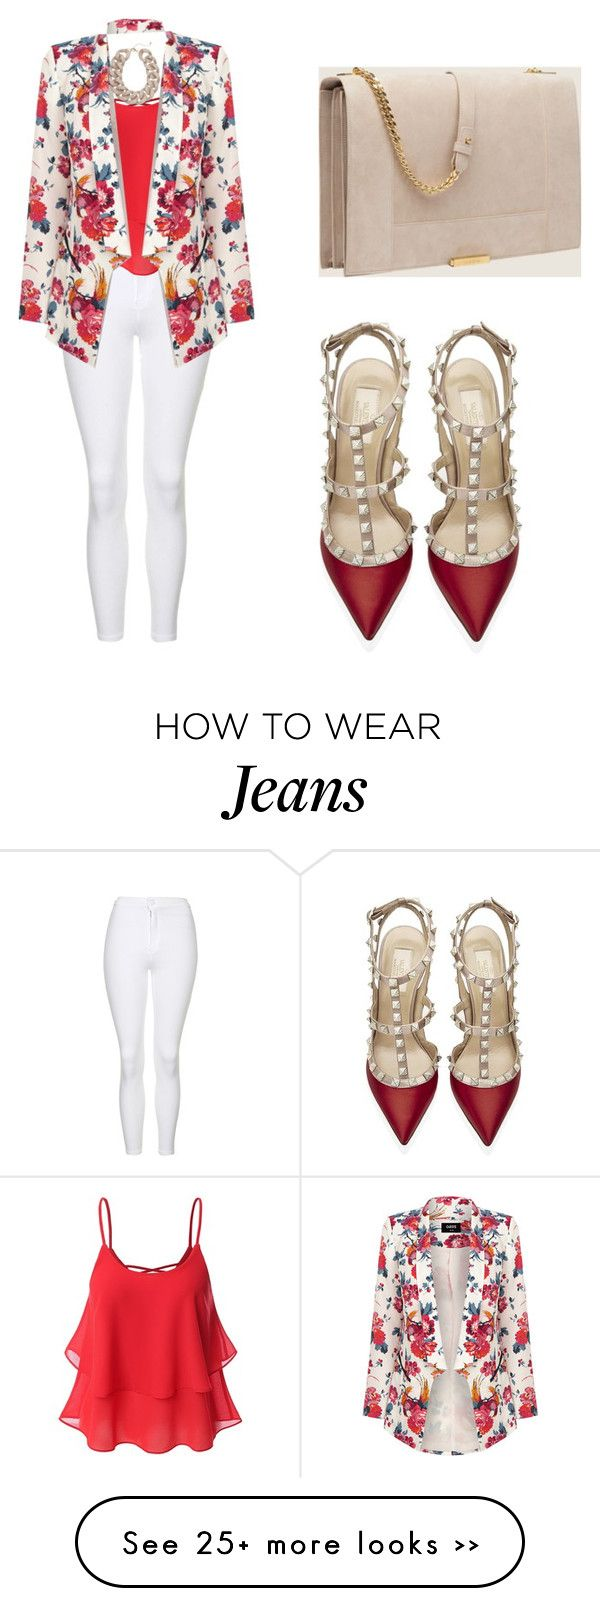 """floral red outfit"" by tania-alves on Polyvore"